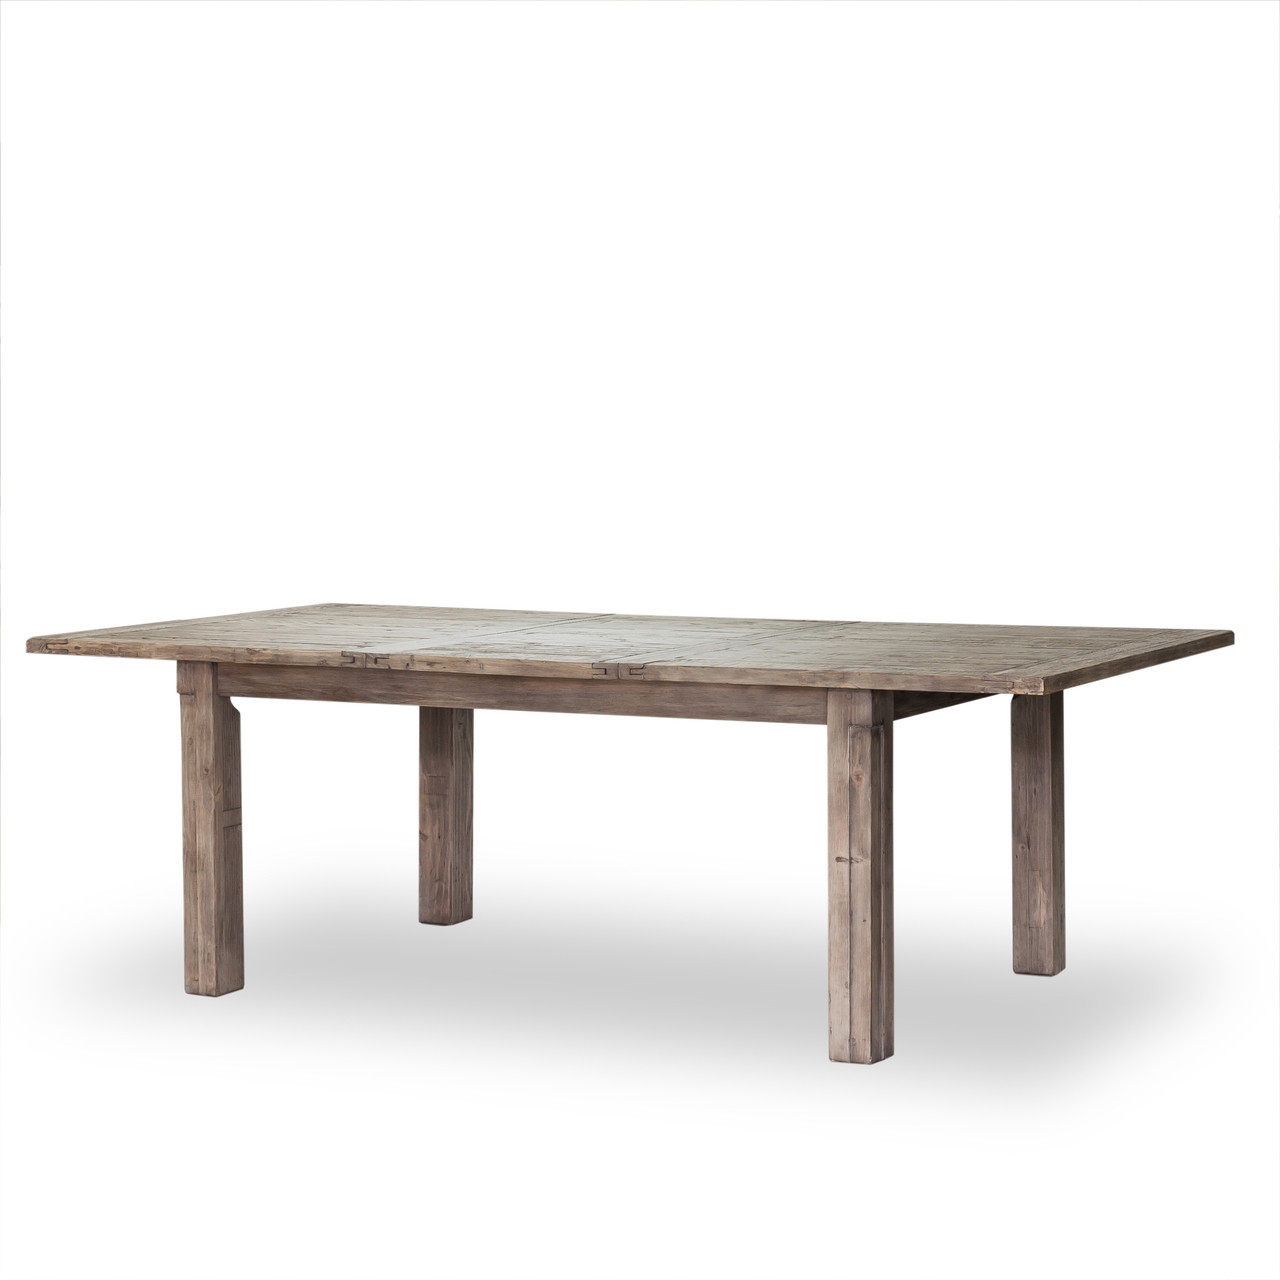 Cintra Grey Reclaimed Wood Extending Dining Table 72 96  : VCID 10 58PRM214247148952183812801280 from www.zinhome.com size 1280 x 1280 jpeg 218kB